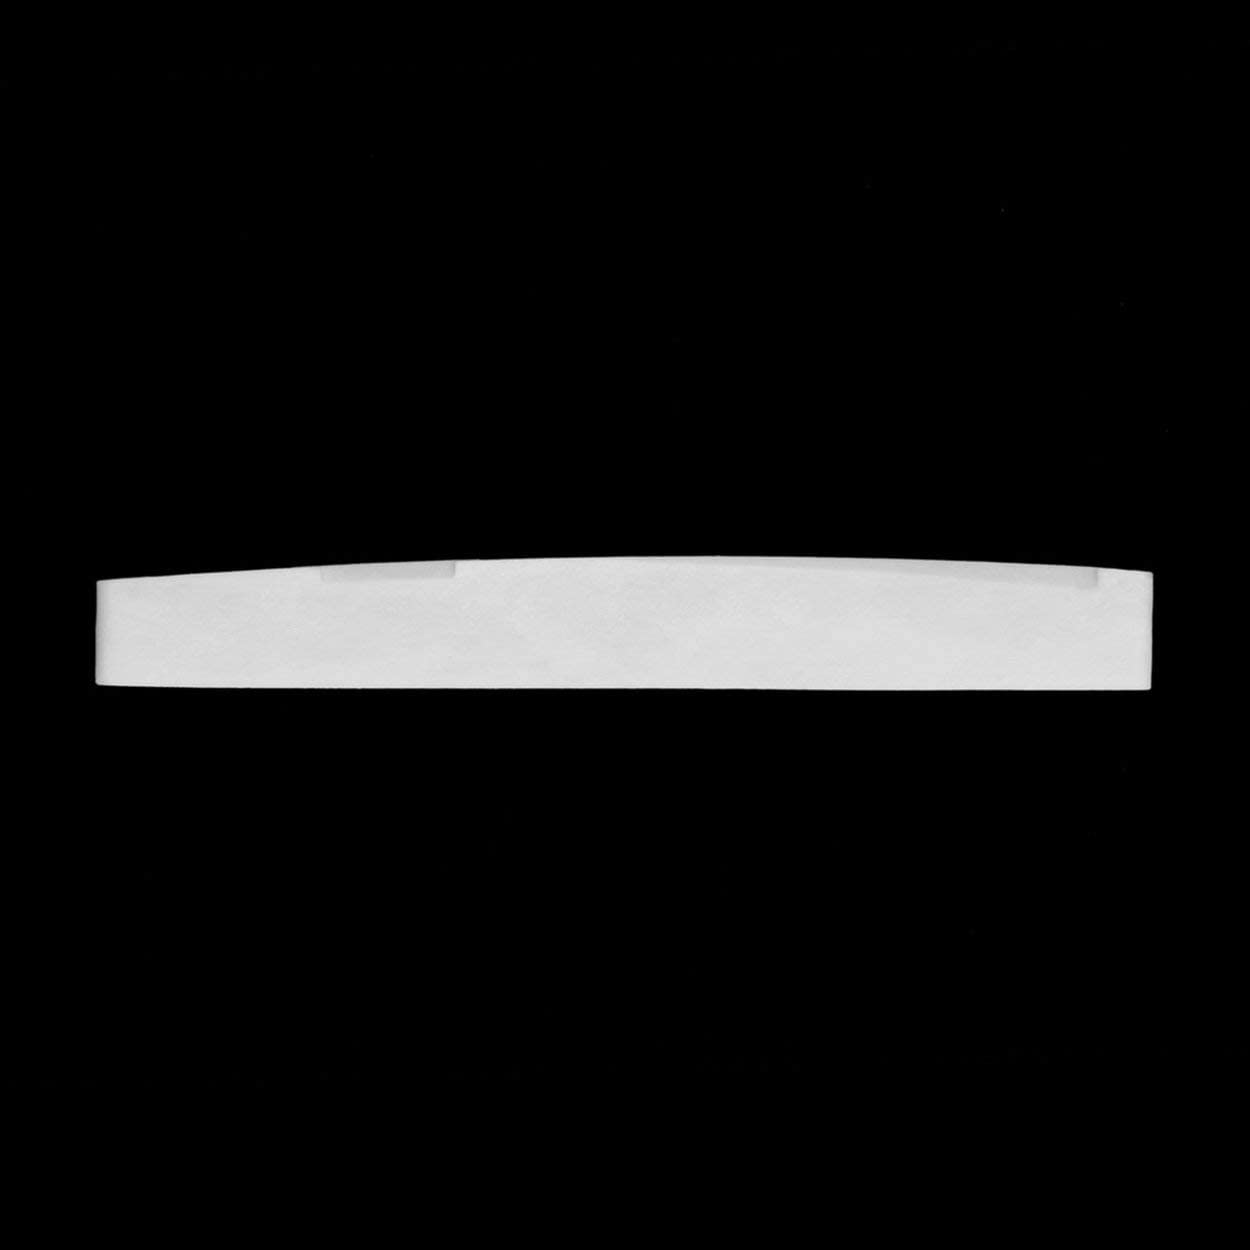 Spare parts,Ivory White 2.83 x 0.35 x 0.12inch Classical Buffalo Bone Guitar Bridge Saddle Replacement Parts For 6 String Acoustic Guitar